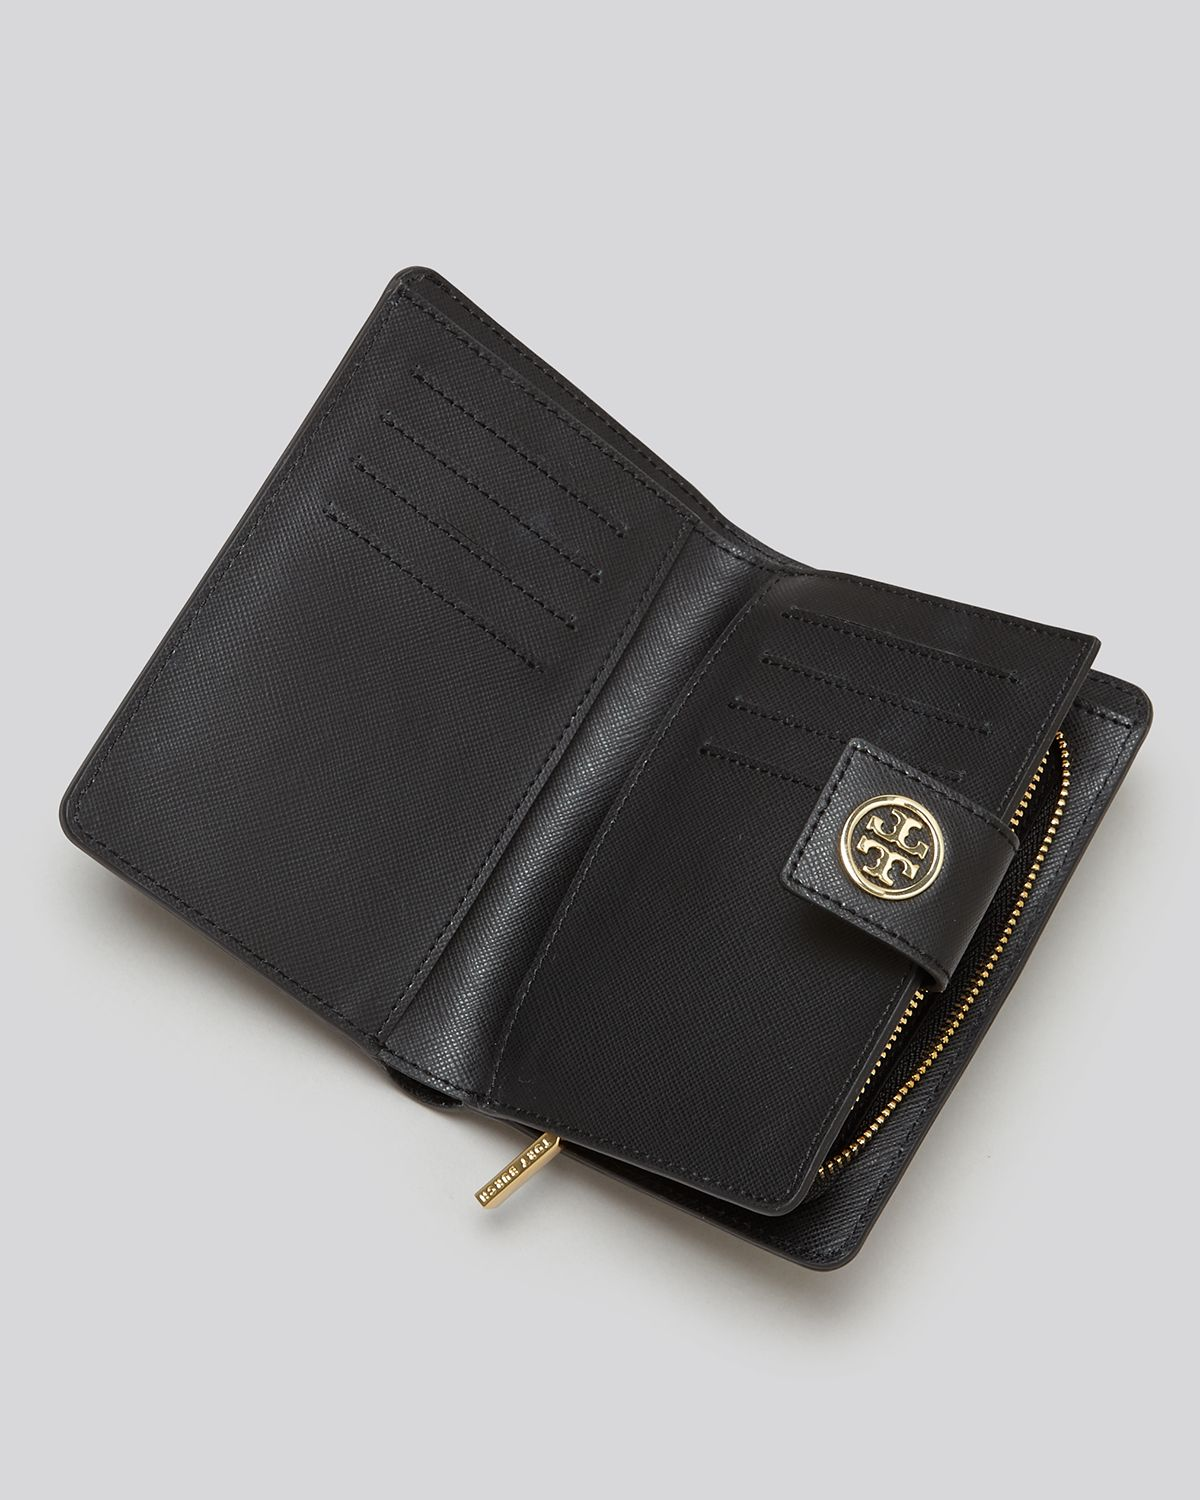 7353ad7857fb Tory Burch French Wallet - Best Photo Wallet Justiceforkenny.Org